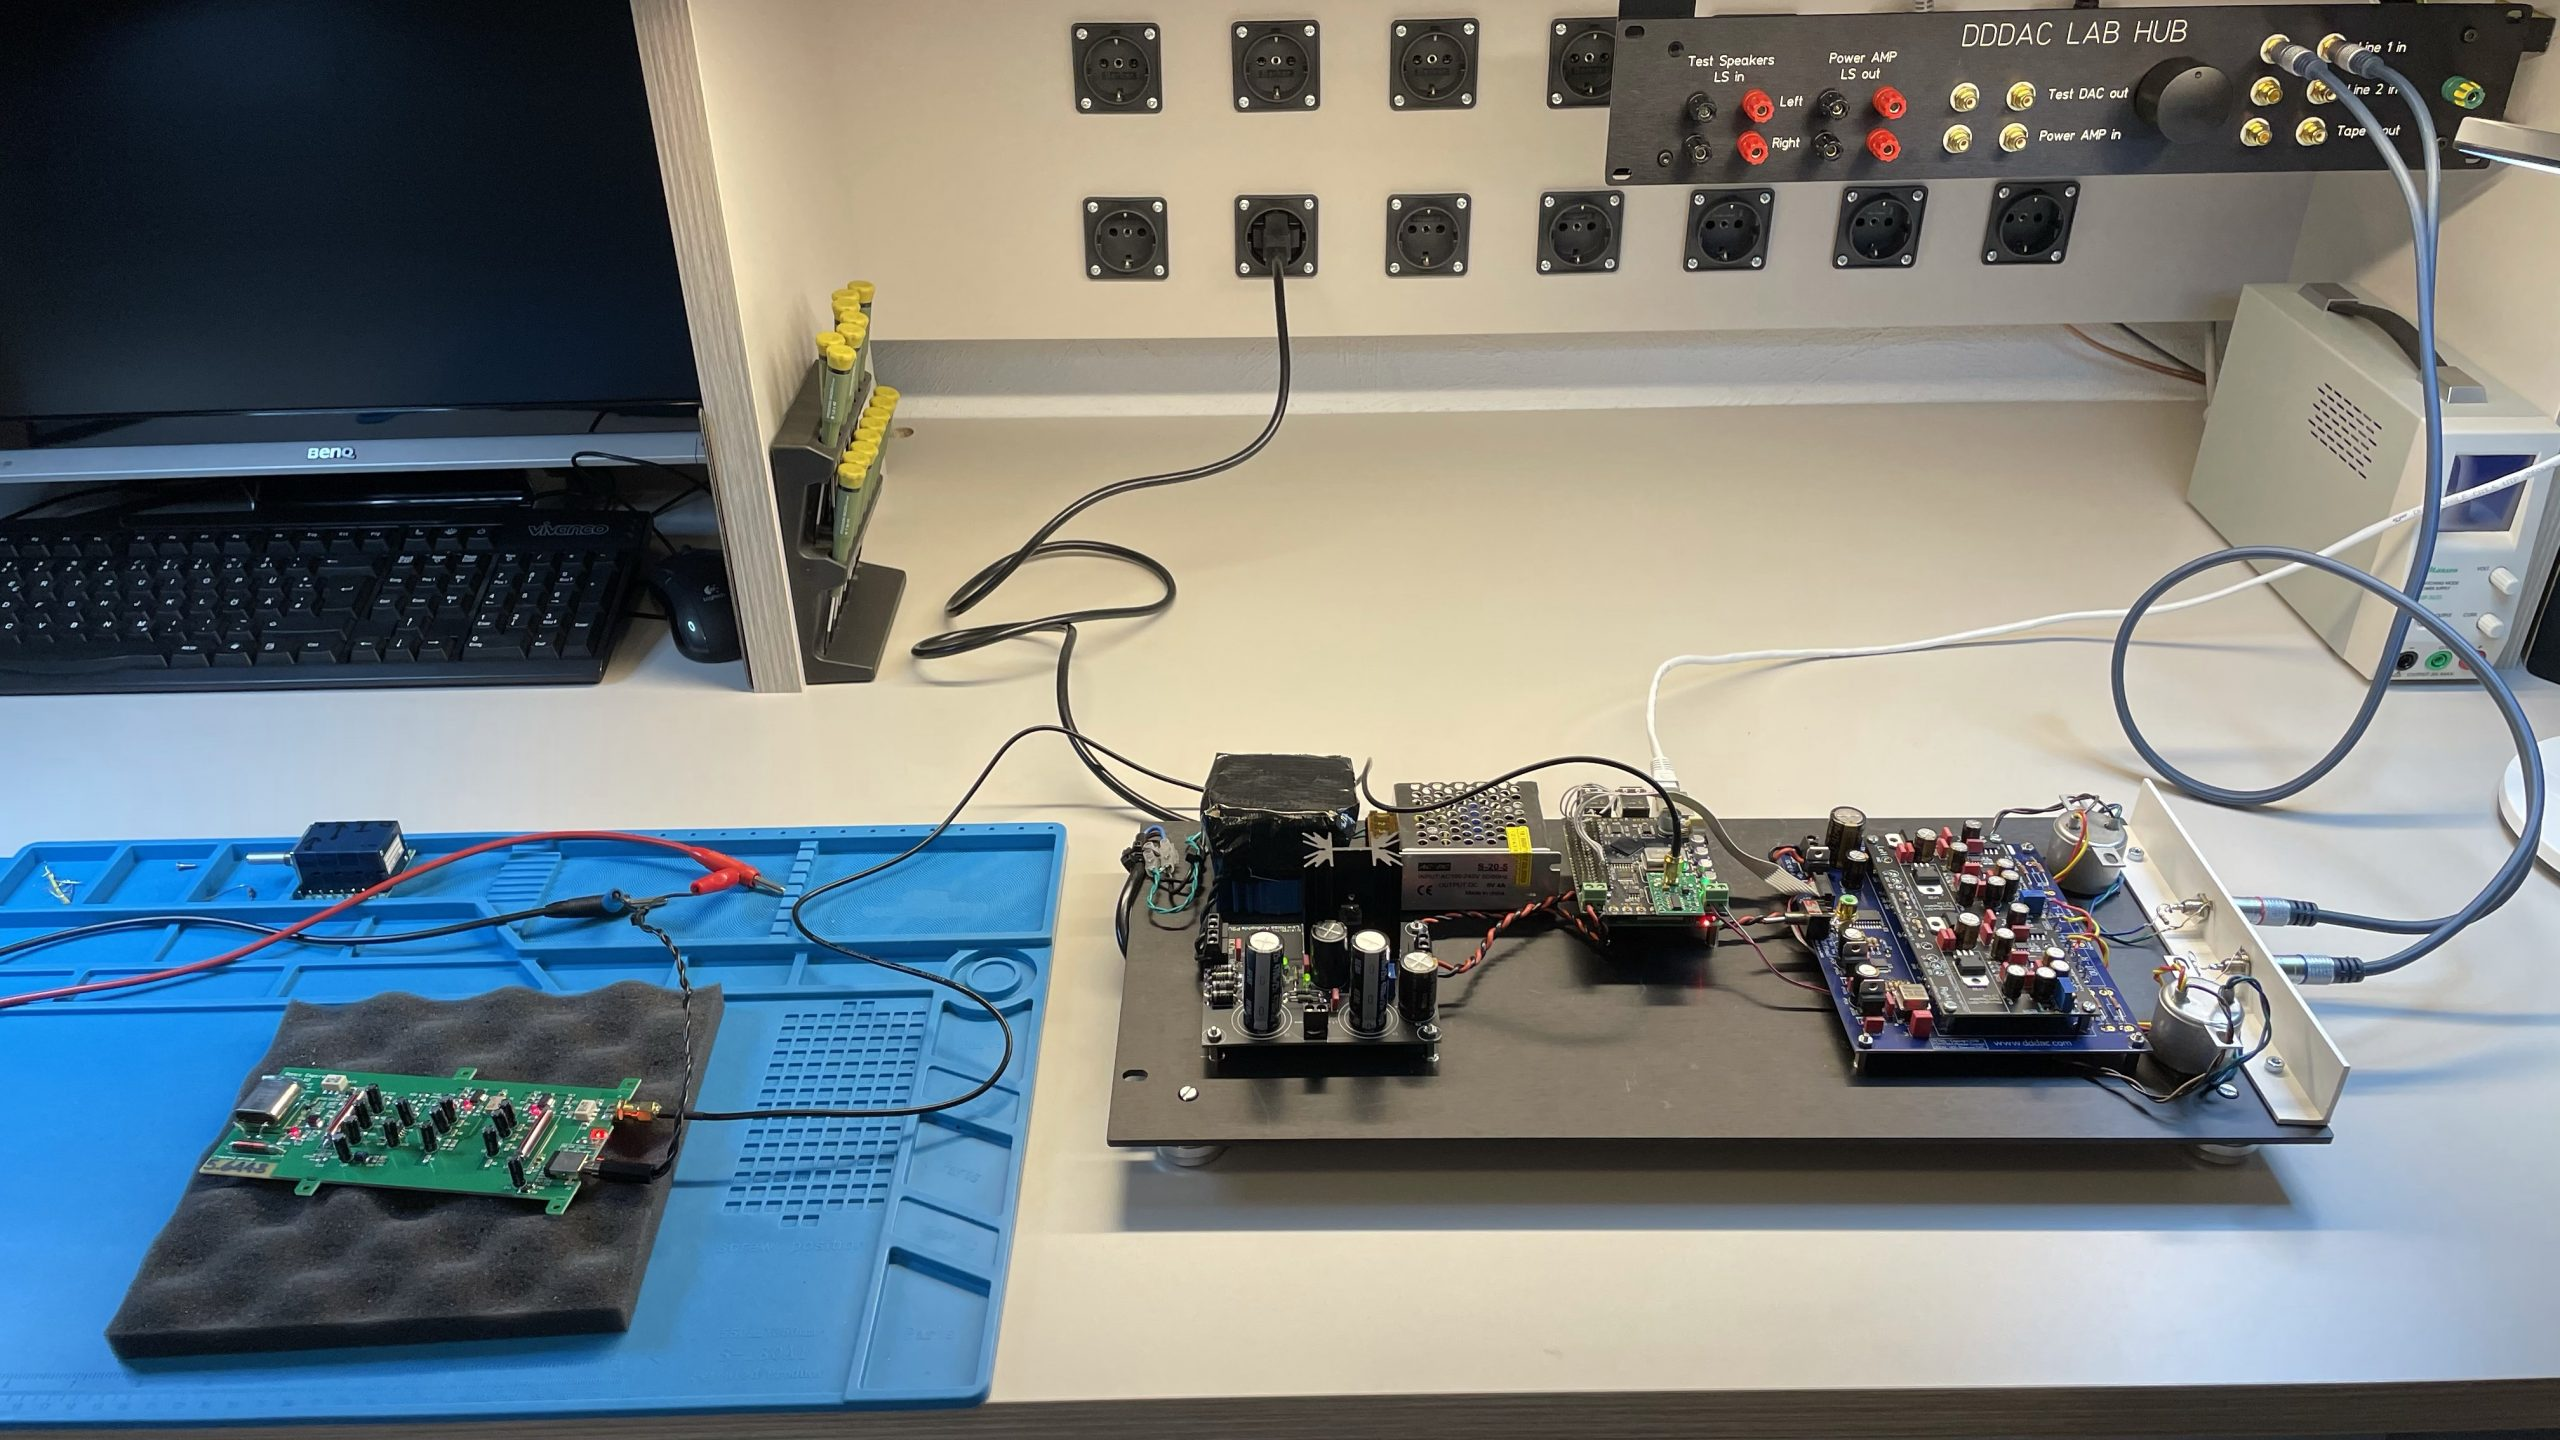 Andrea Clock Test Set-Up on DDDAC1794